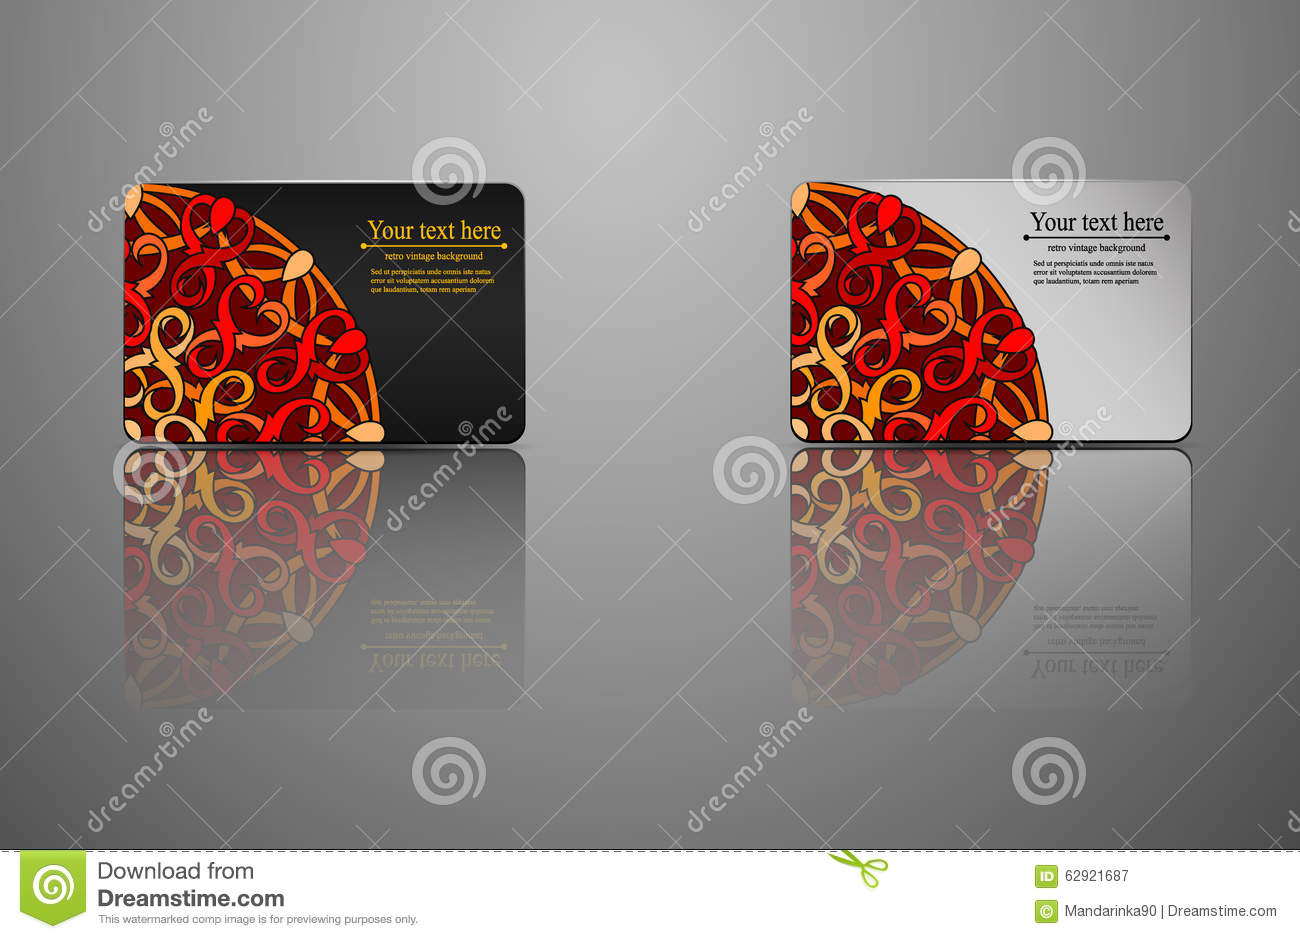 Template gift card credit card business card an invitation stock template gift card credit card business card an invitation accmission Image collections